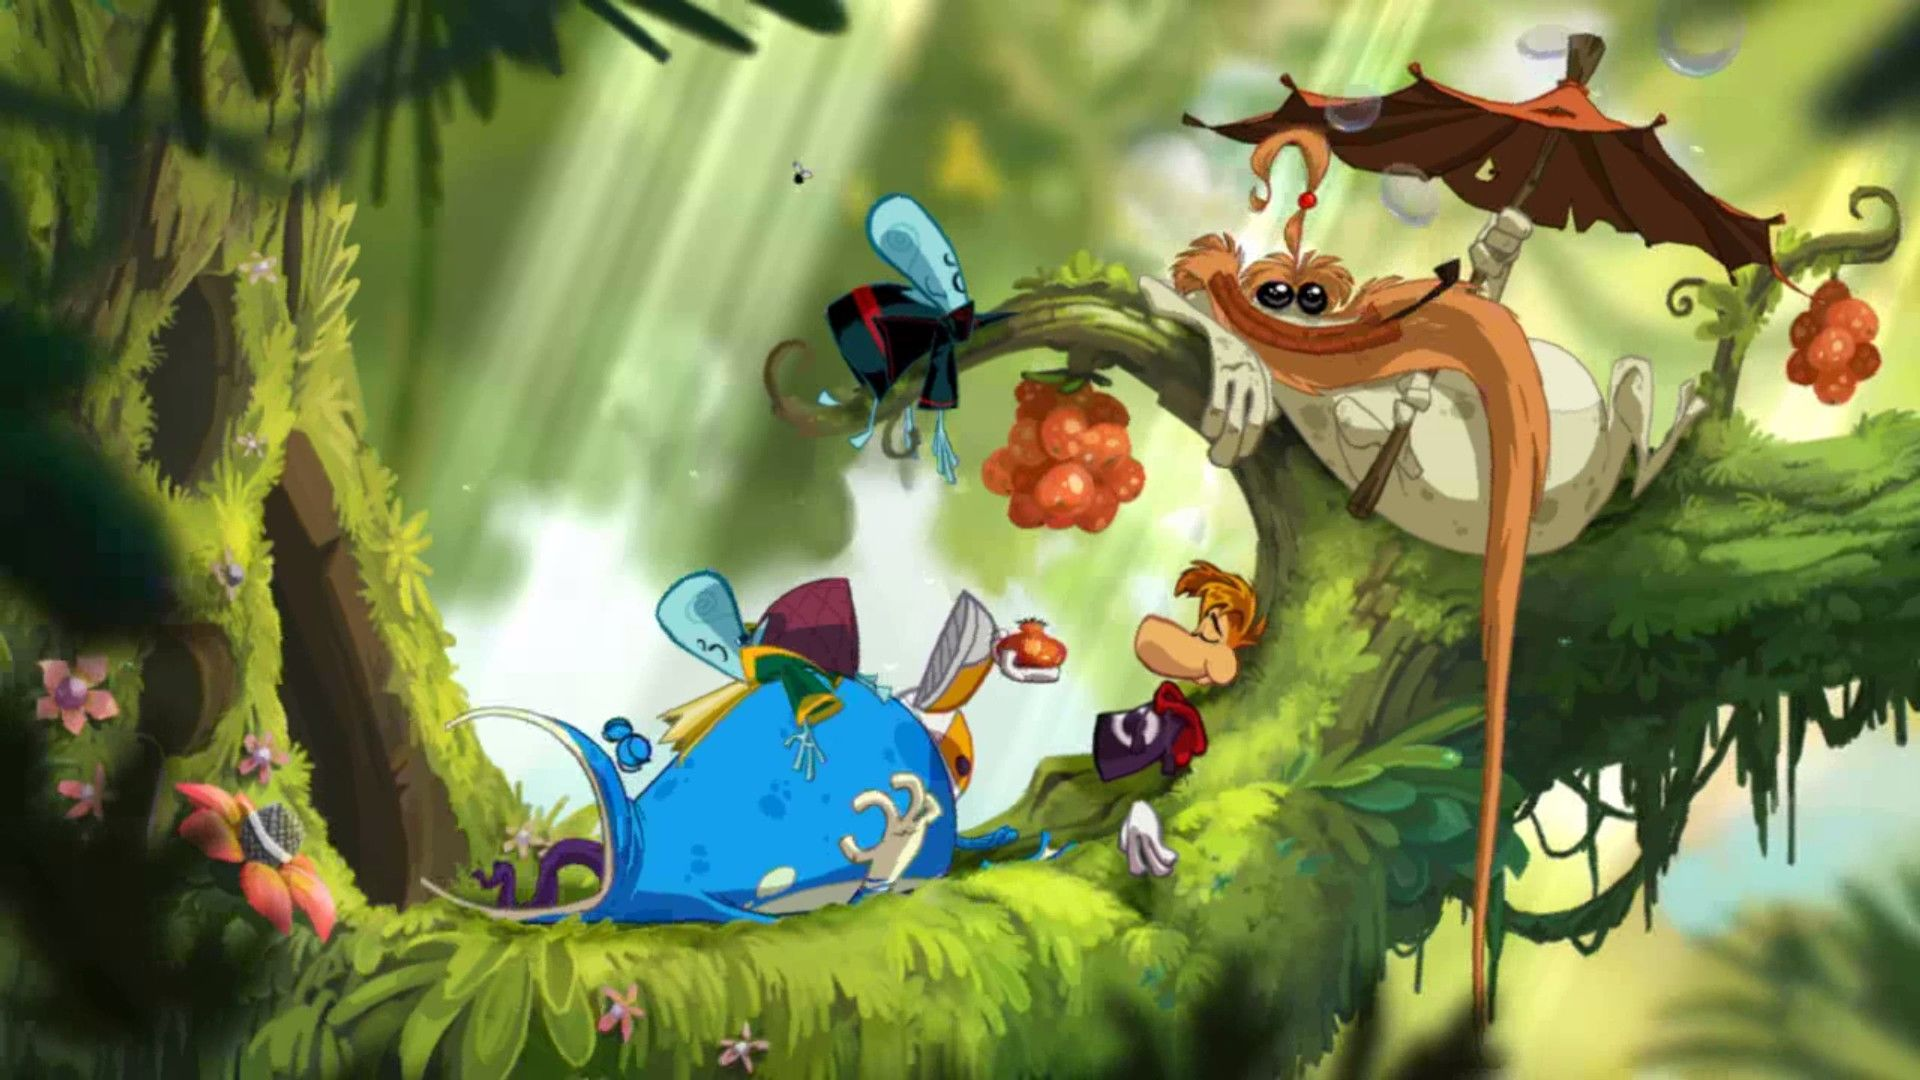 http://www.mobygames.com/images/shots/l/553949-rayman-origins-windows-screenshot-our-heroes-in-action-s.jpg